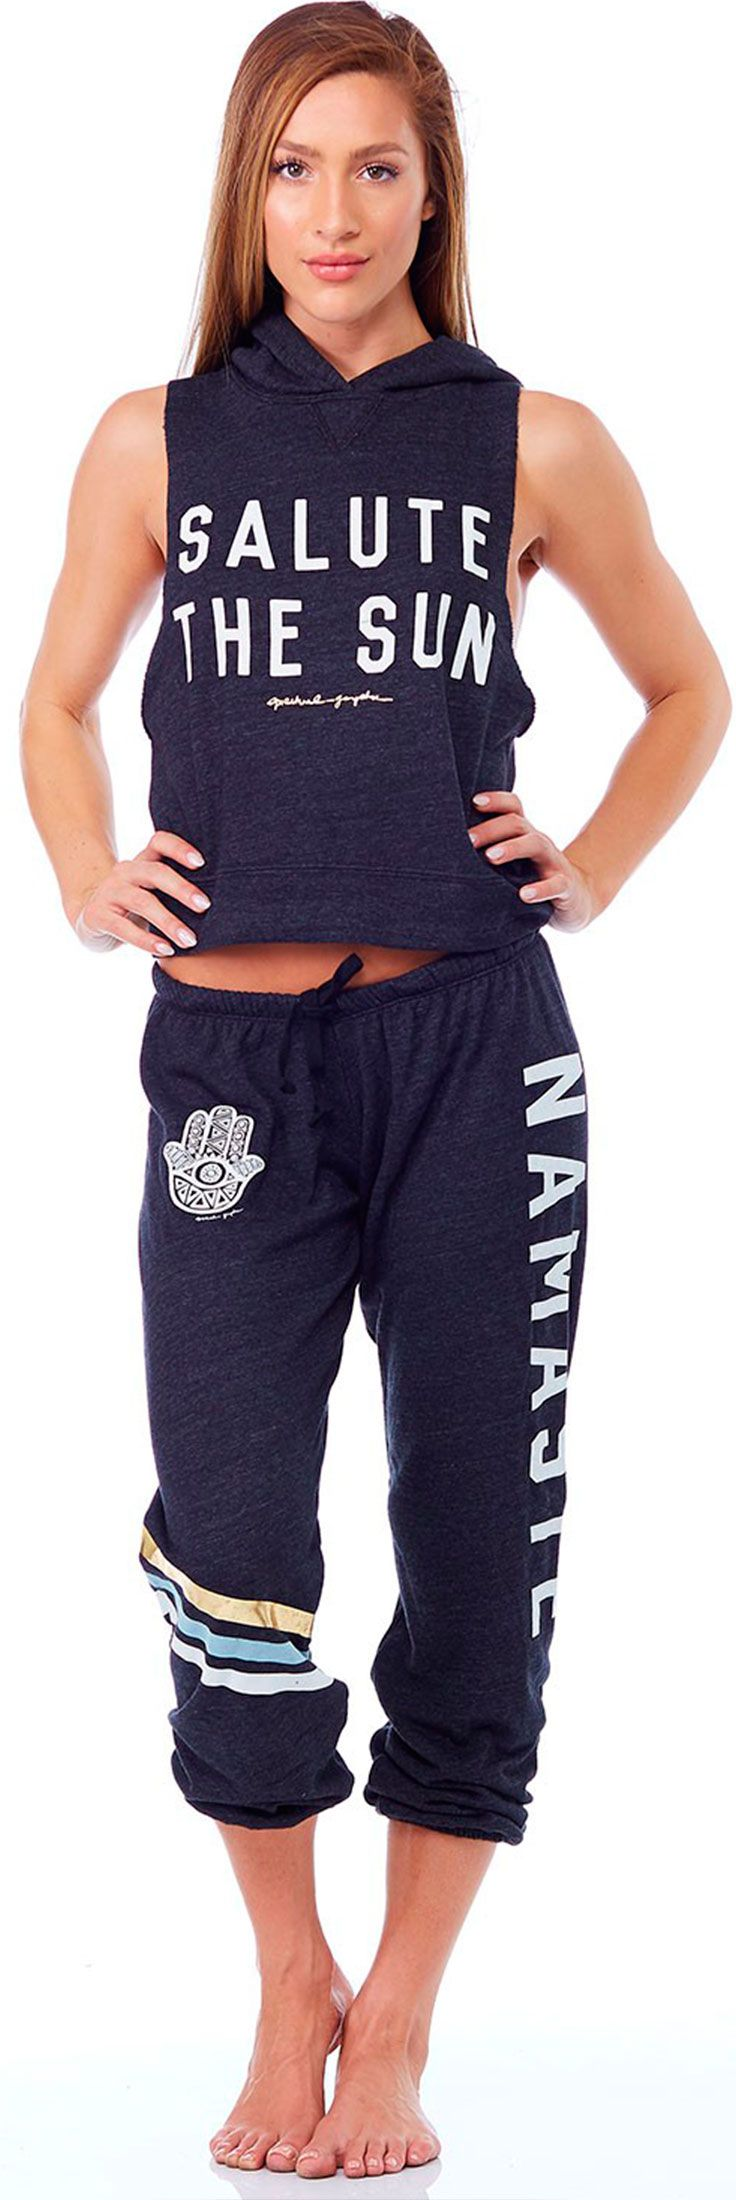 Salute the Sun in this adorable Hooded Muscle Sweatshirt and Namaste Sweatpants!...